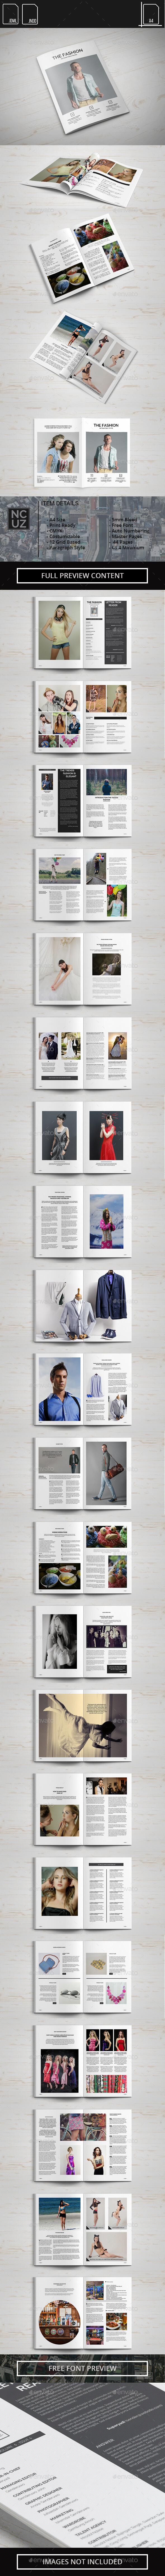 Simple Fashion Magazine  - Magazines Print Templates